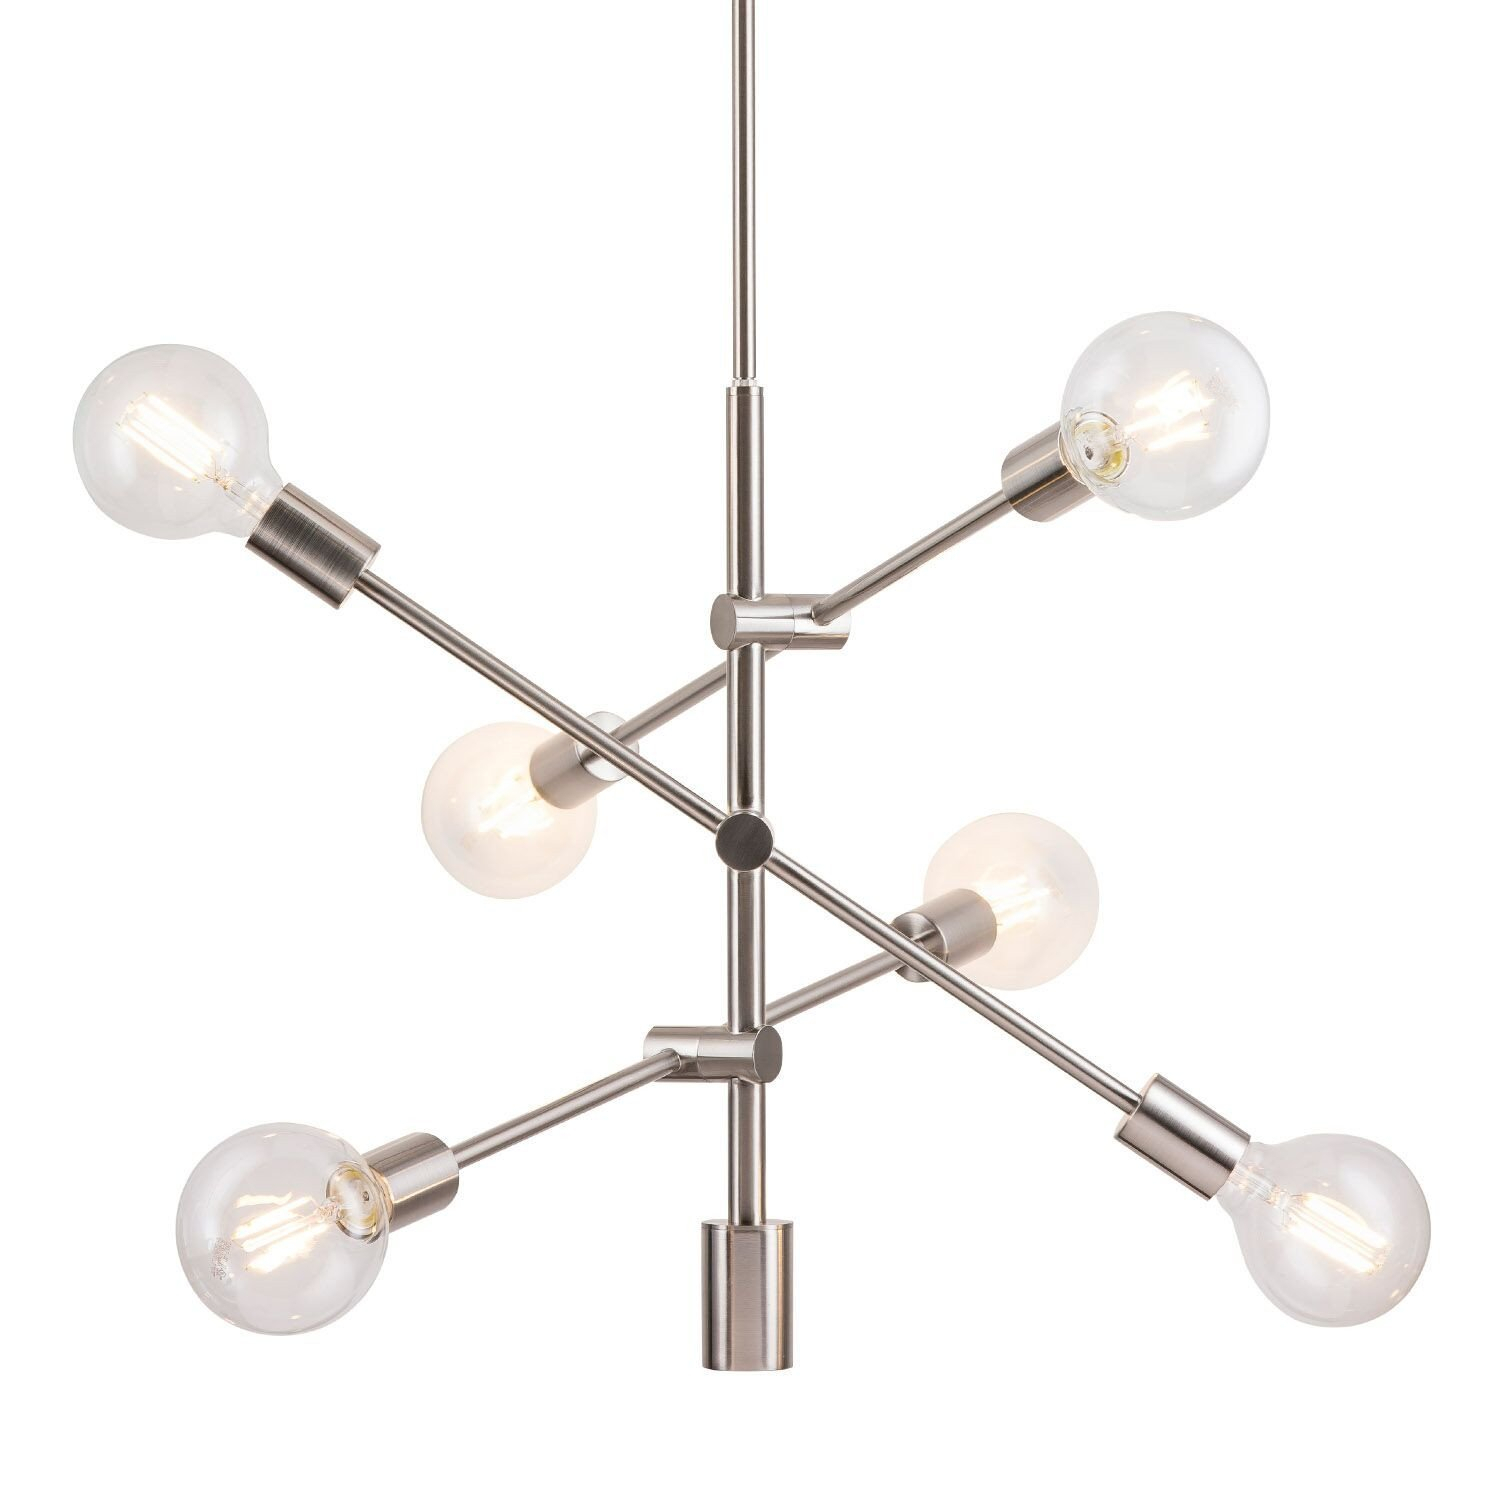 Everett 10 Light Sputnik Chandelier | Allmodern Pertaining To Everett 10 Light Sputnik Chandeliers (Gallery 24 of 30)